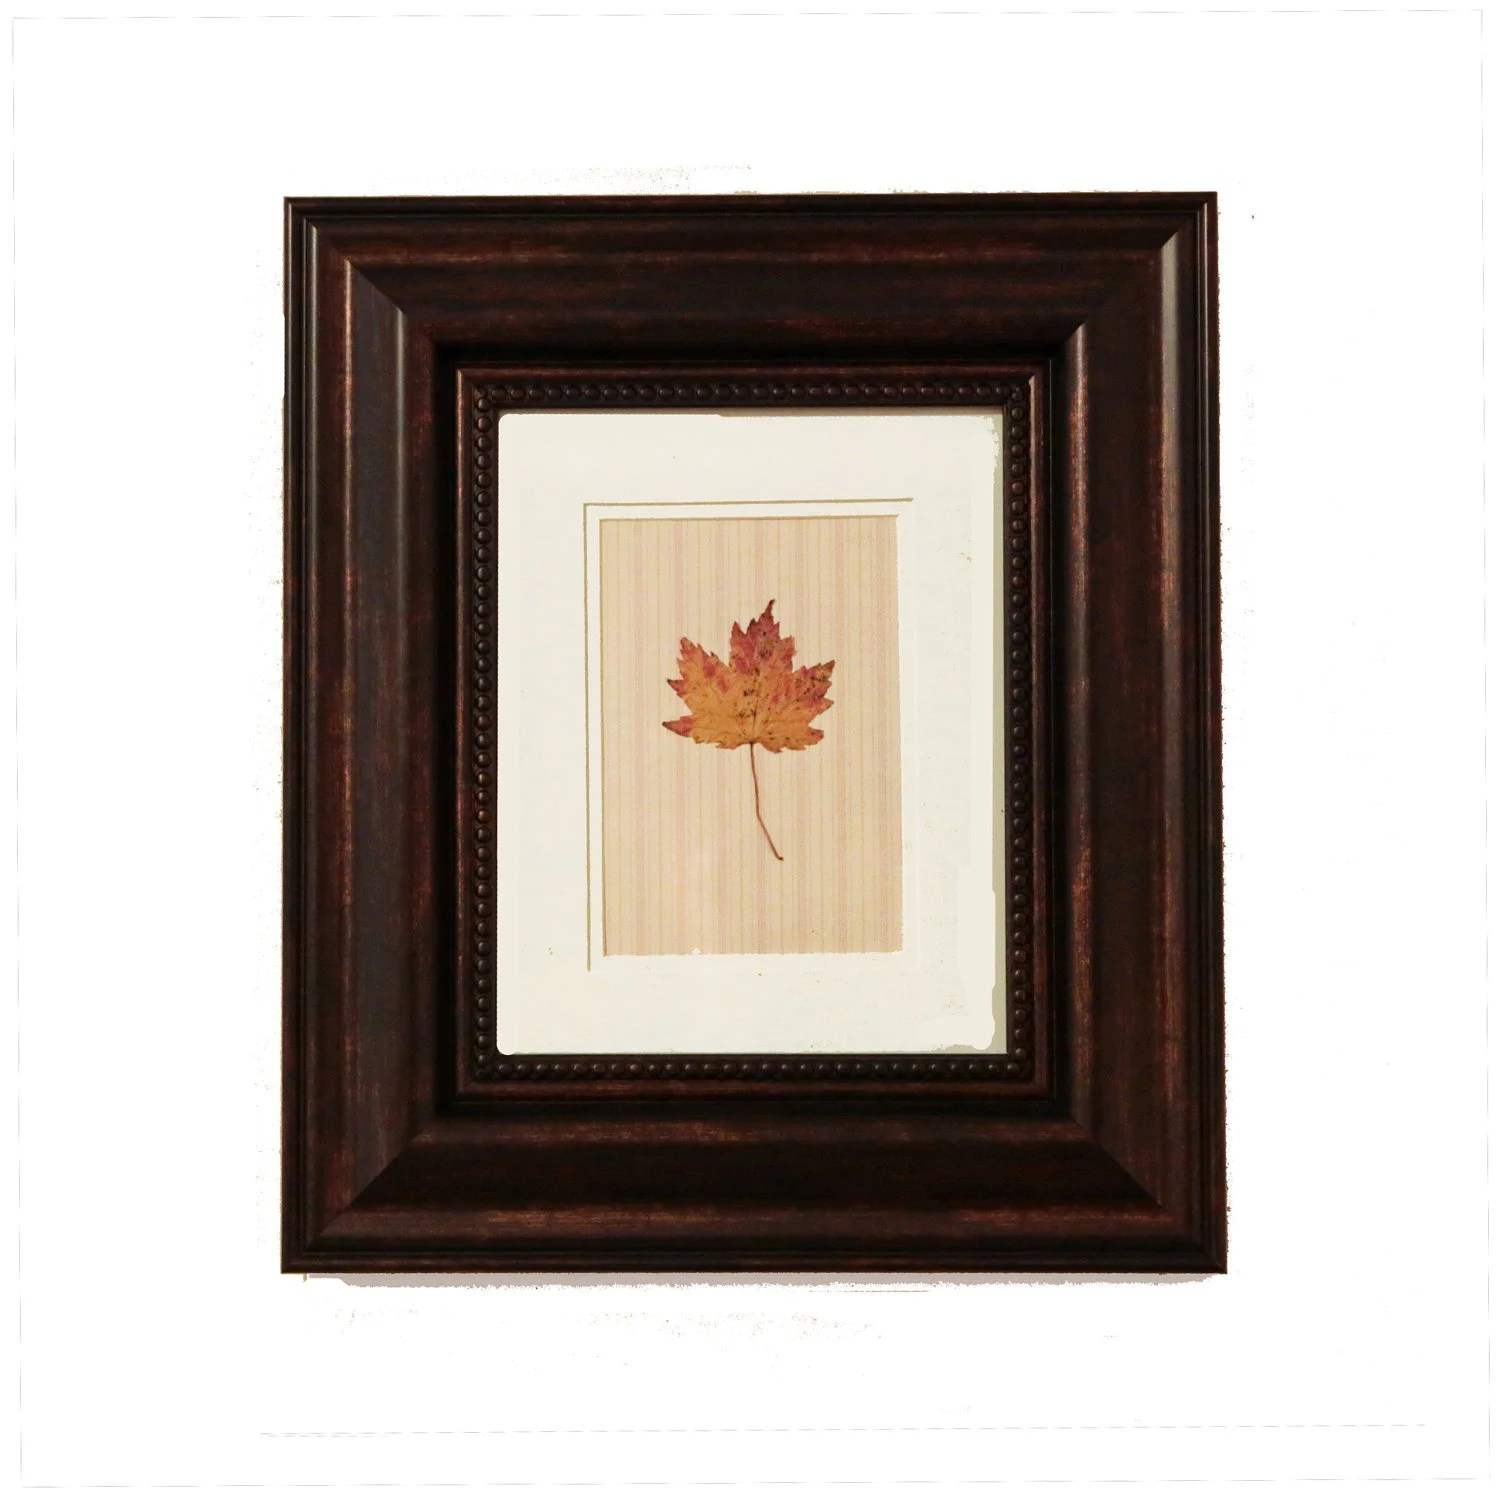 Framed Fall Leaf Pressed Leaves  Autumn Wall Decor Thanksgiving Decor - FoundationCreations